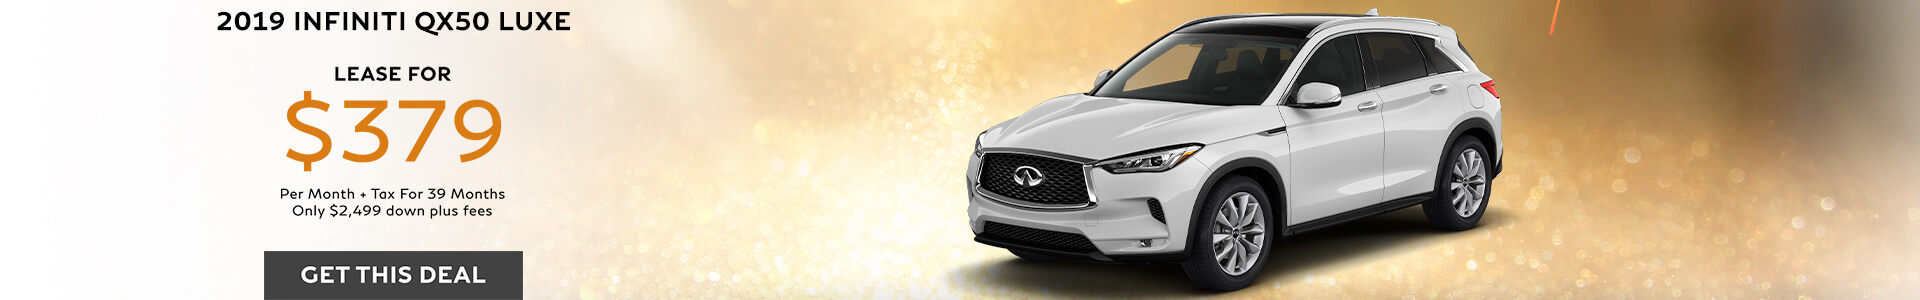 QX50 ESSENTIAL - Lease for $379